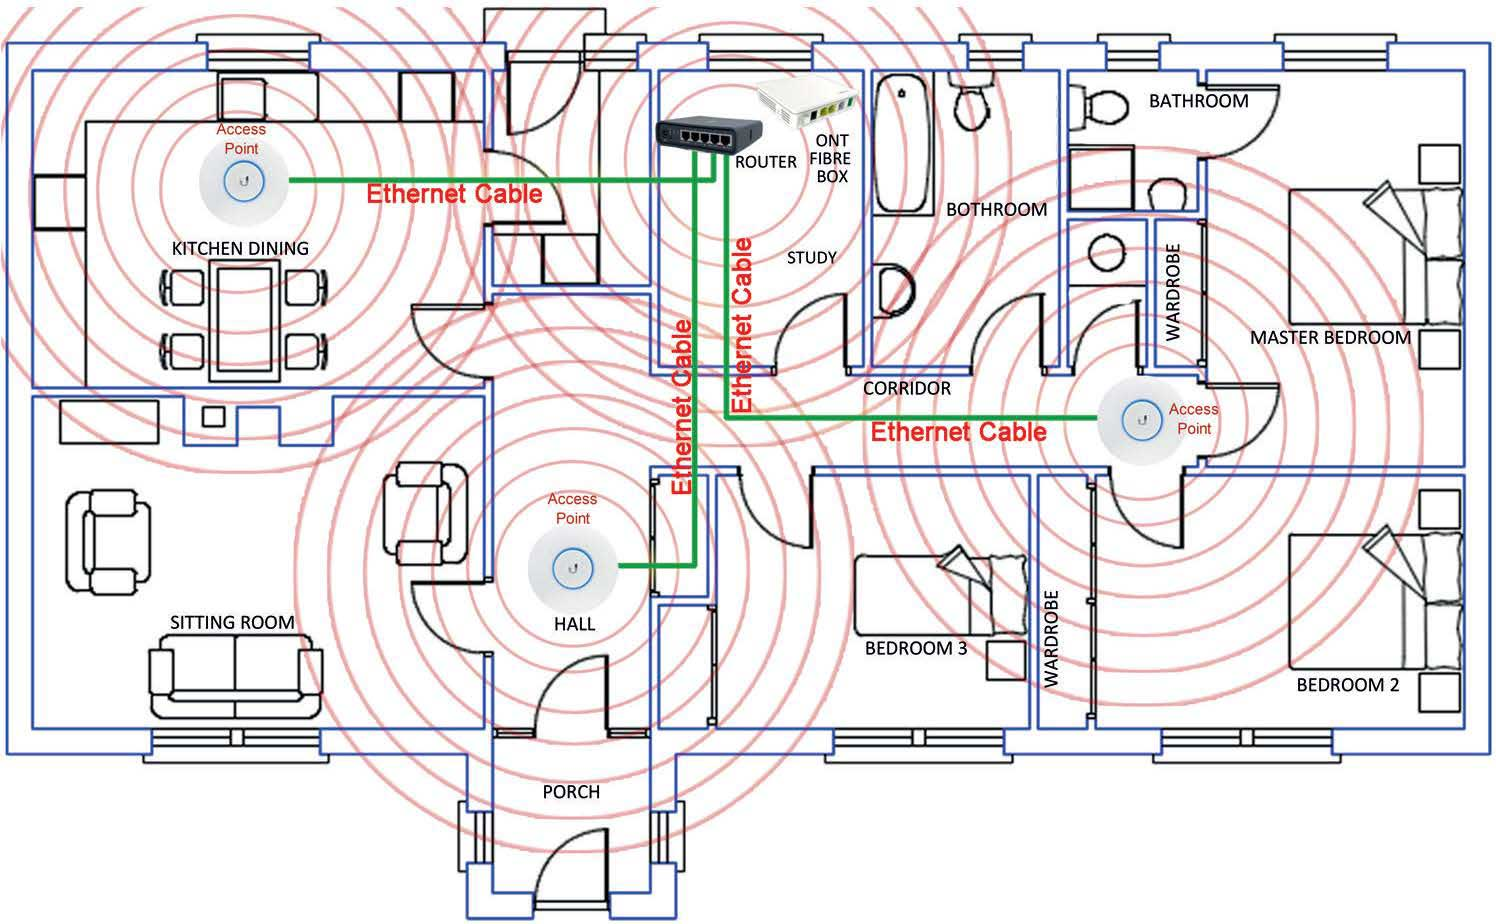 ACCESS-POINT-HOME-WIFI-NETWORK-img1